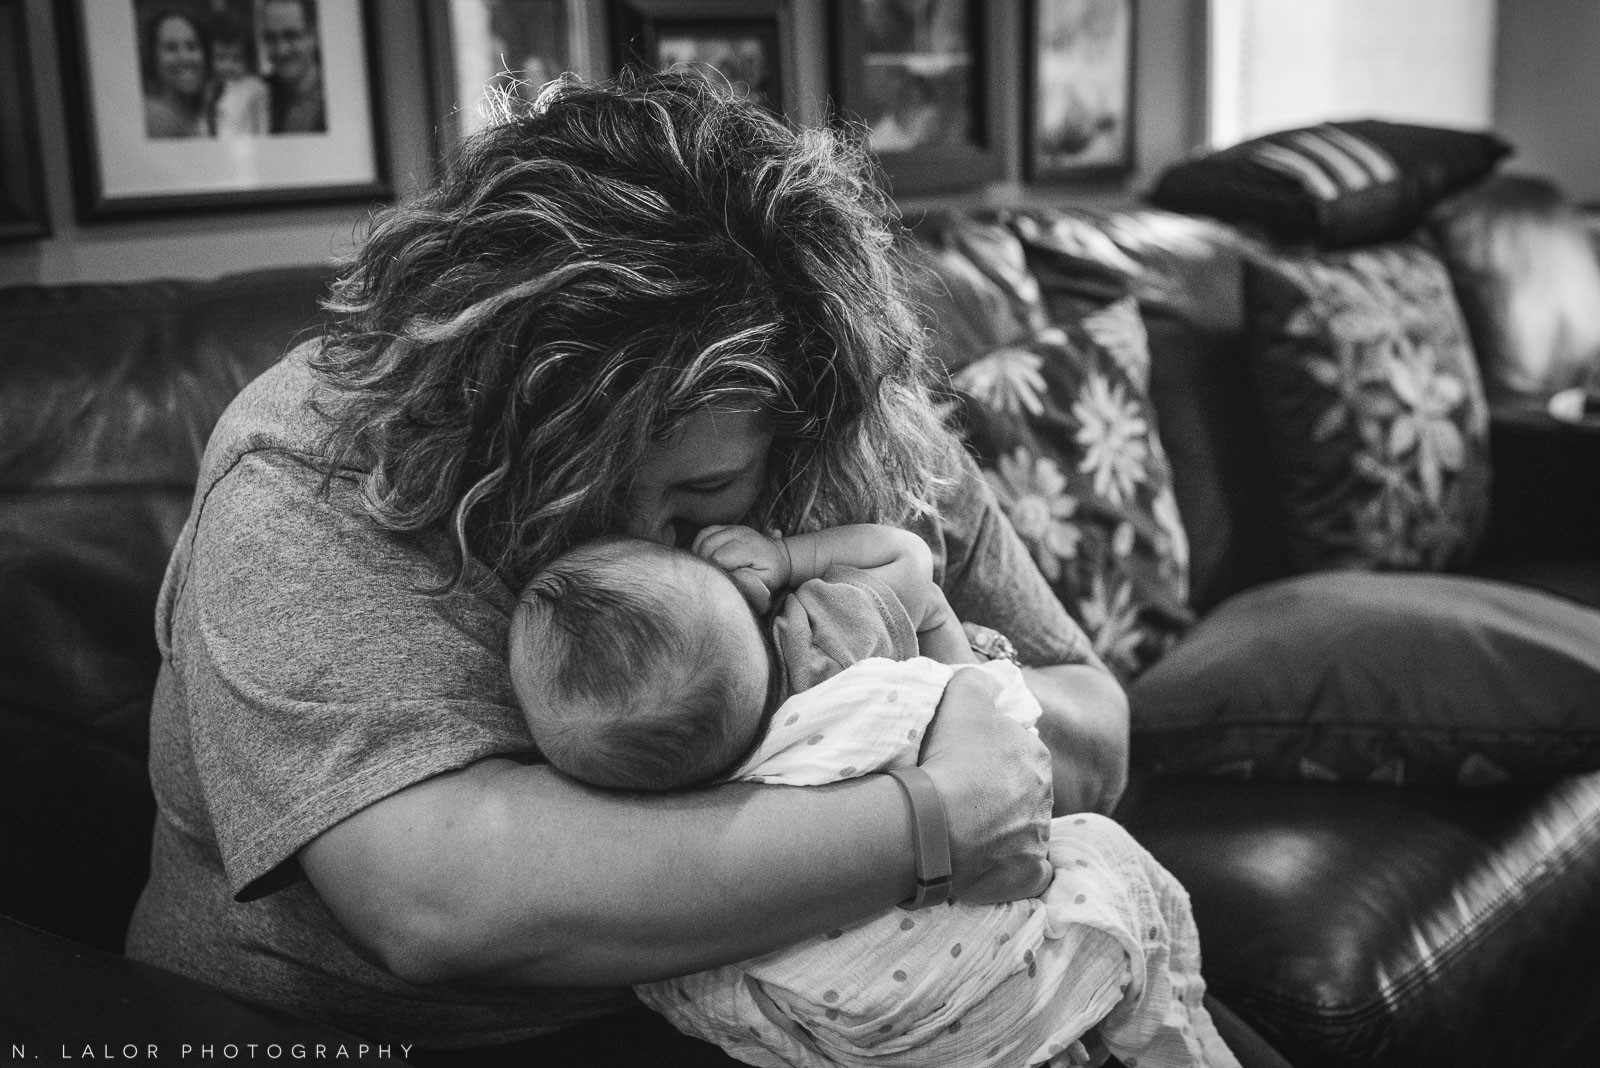 Mom kissing her baby boy. Black and white documentary photograph by N. Lalor Photography.